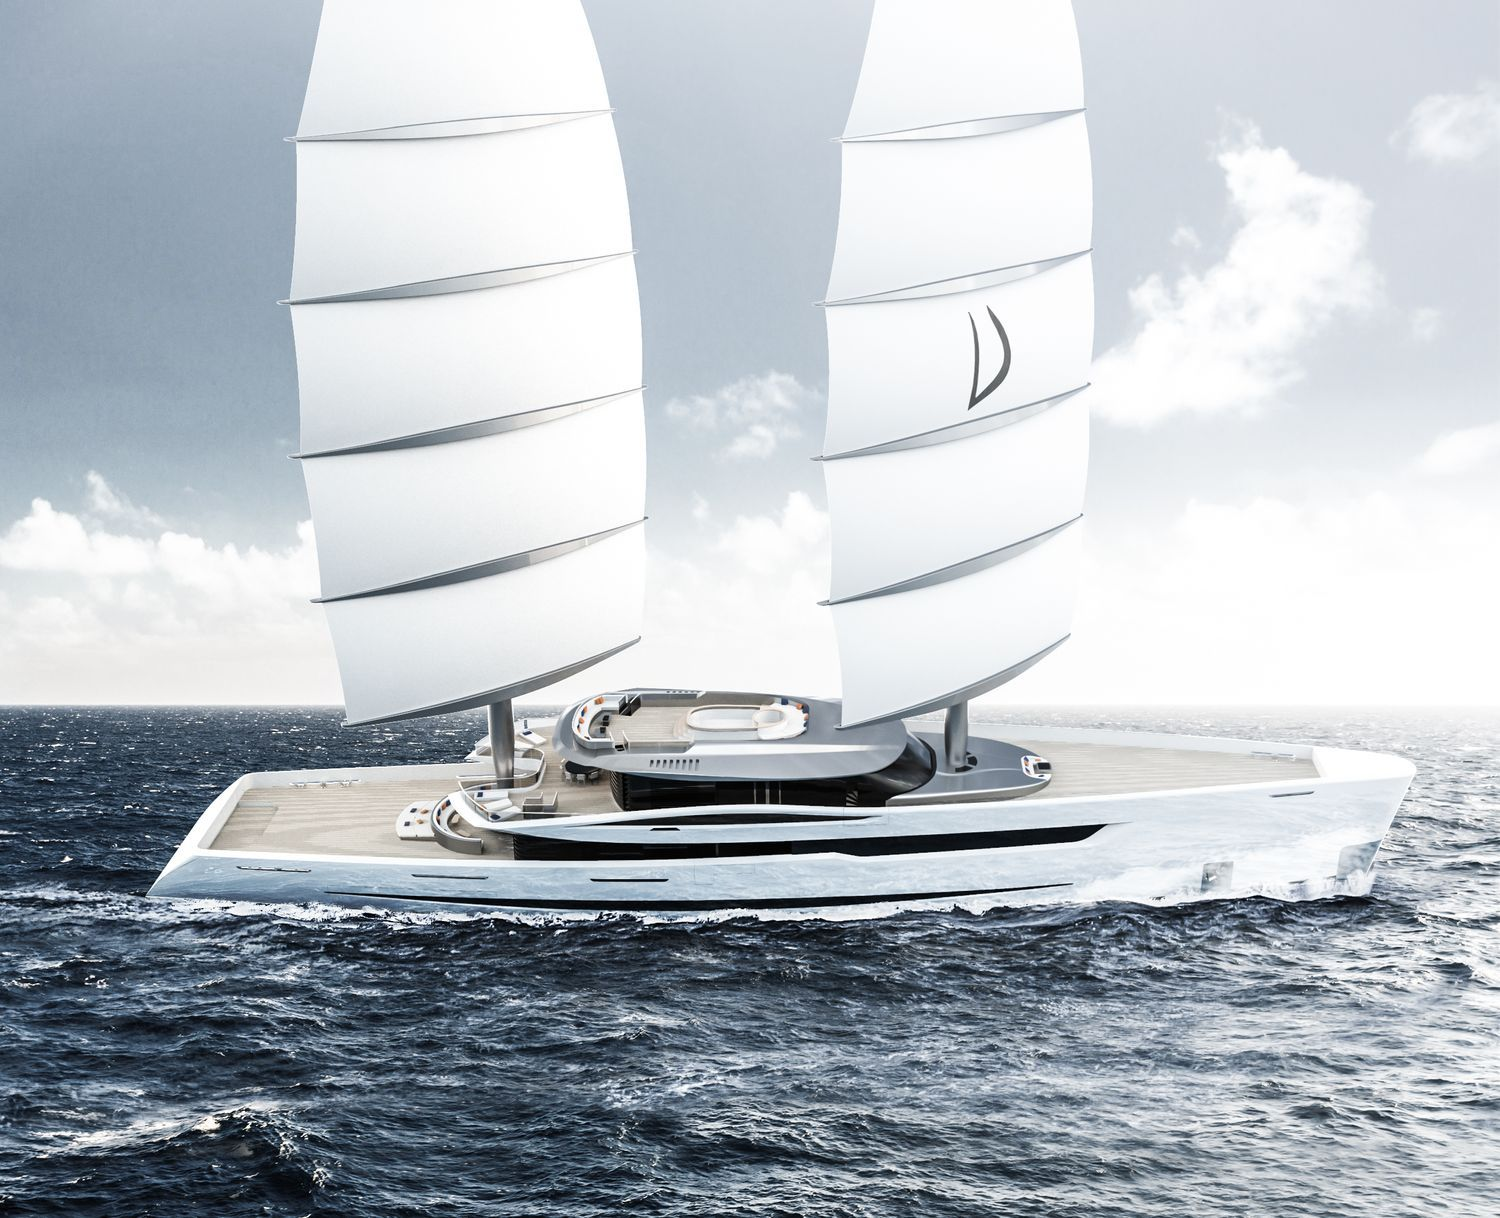 VELA Yacht (80m) by Gianmarco Cardia with DynaRig   Yachts